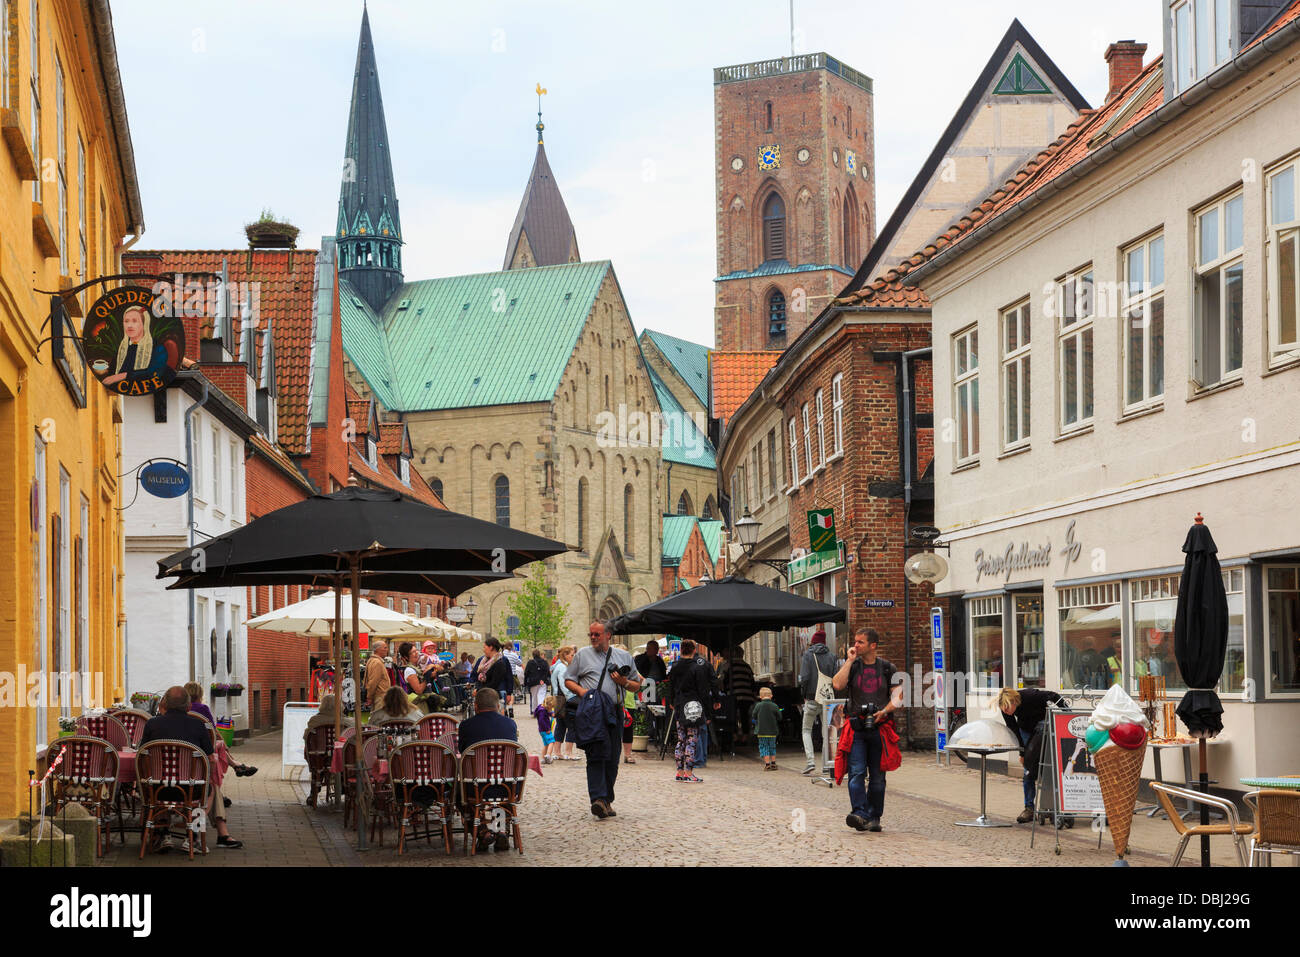 Outdoor cafes in pedestrianised cobbled main street in historic town with Our Lady Maria Cathedral beyond. Ribe - Stock Image